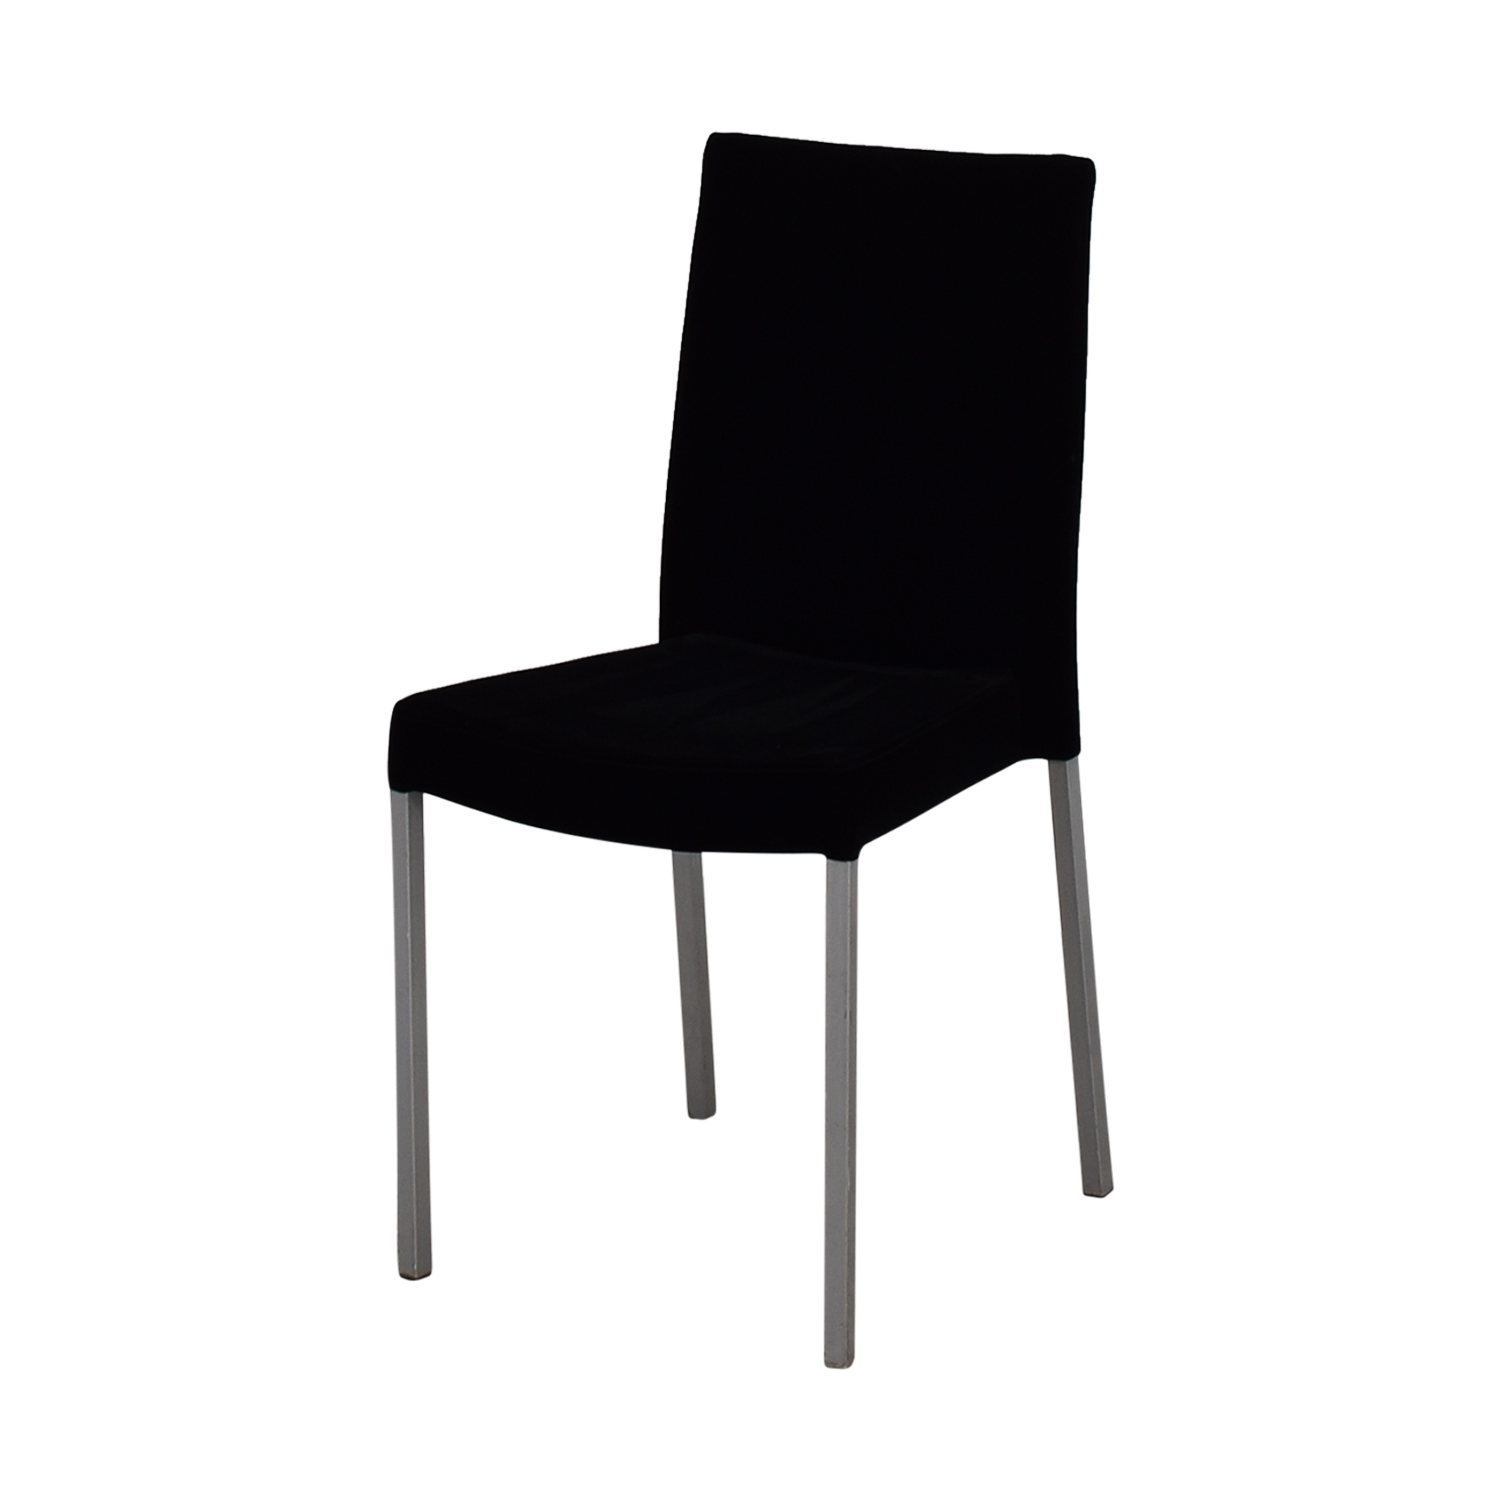 buy Modern Metal and Black Plush Fabric Chair Accent Chairs